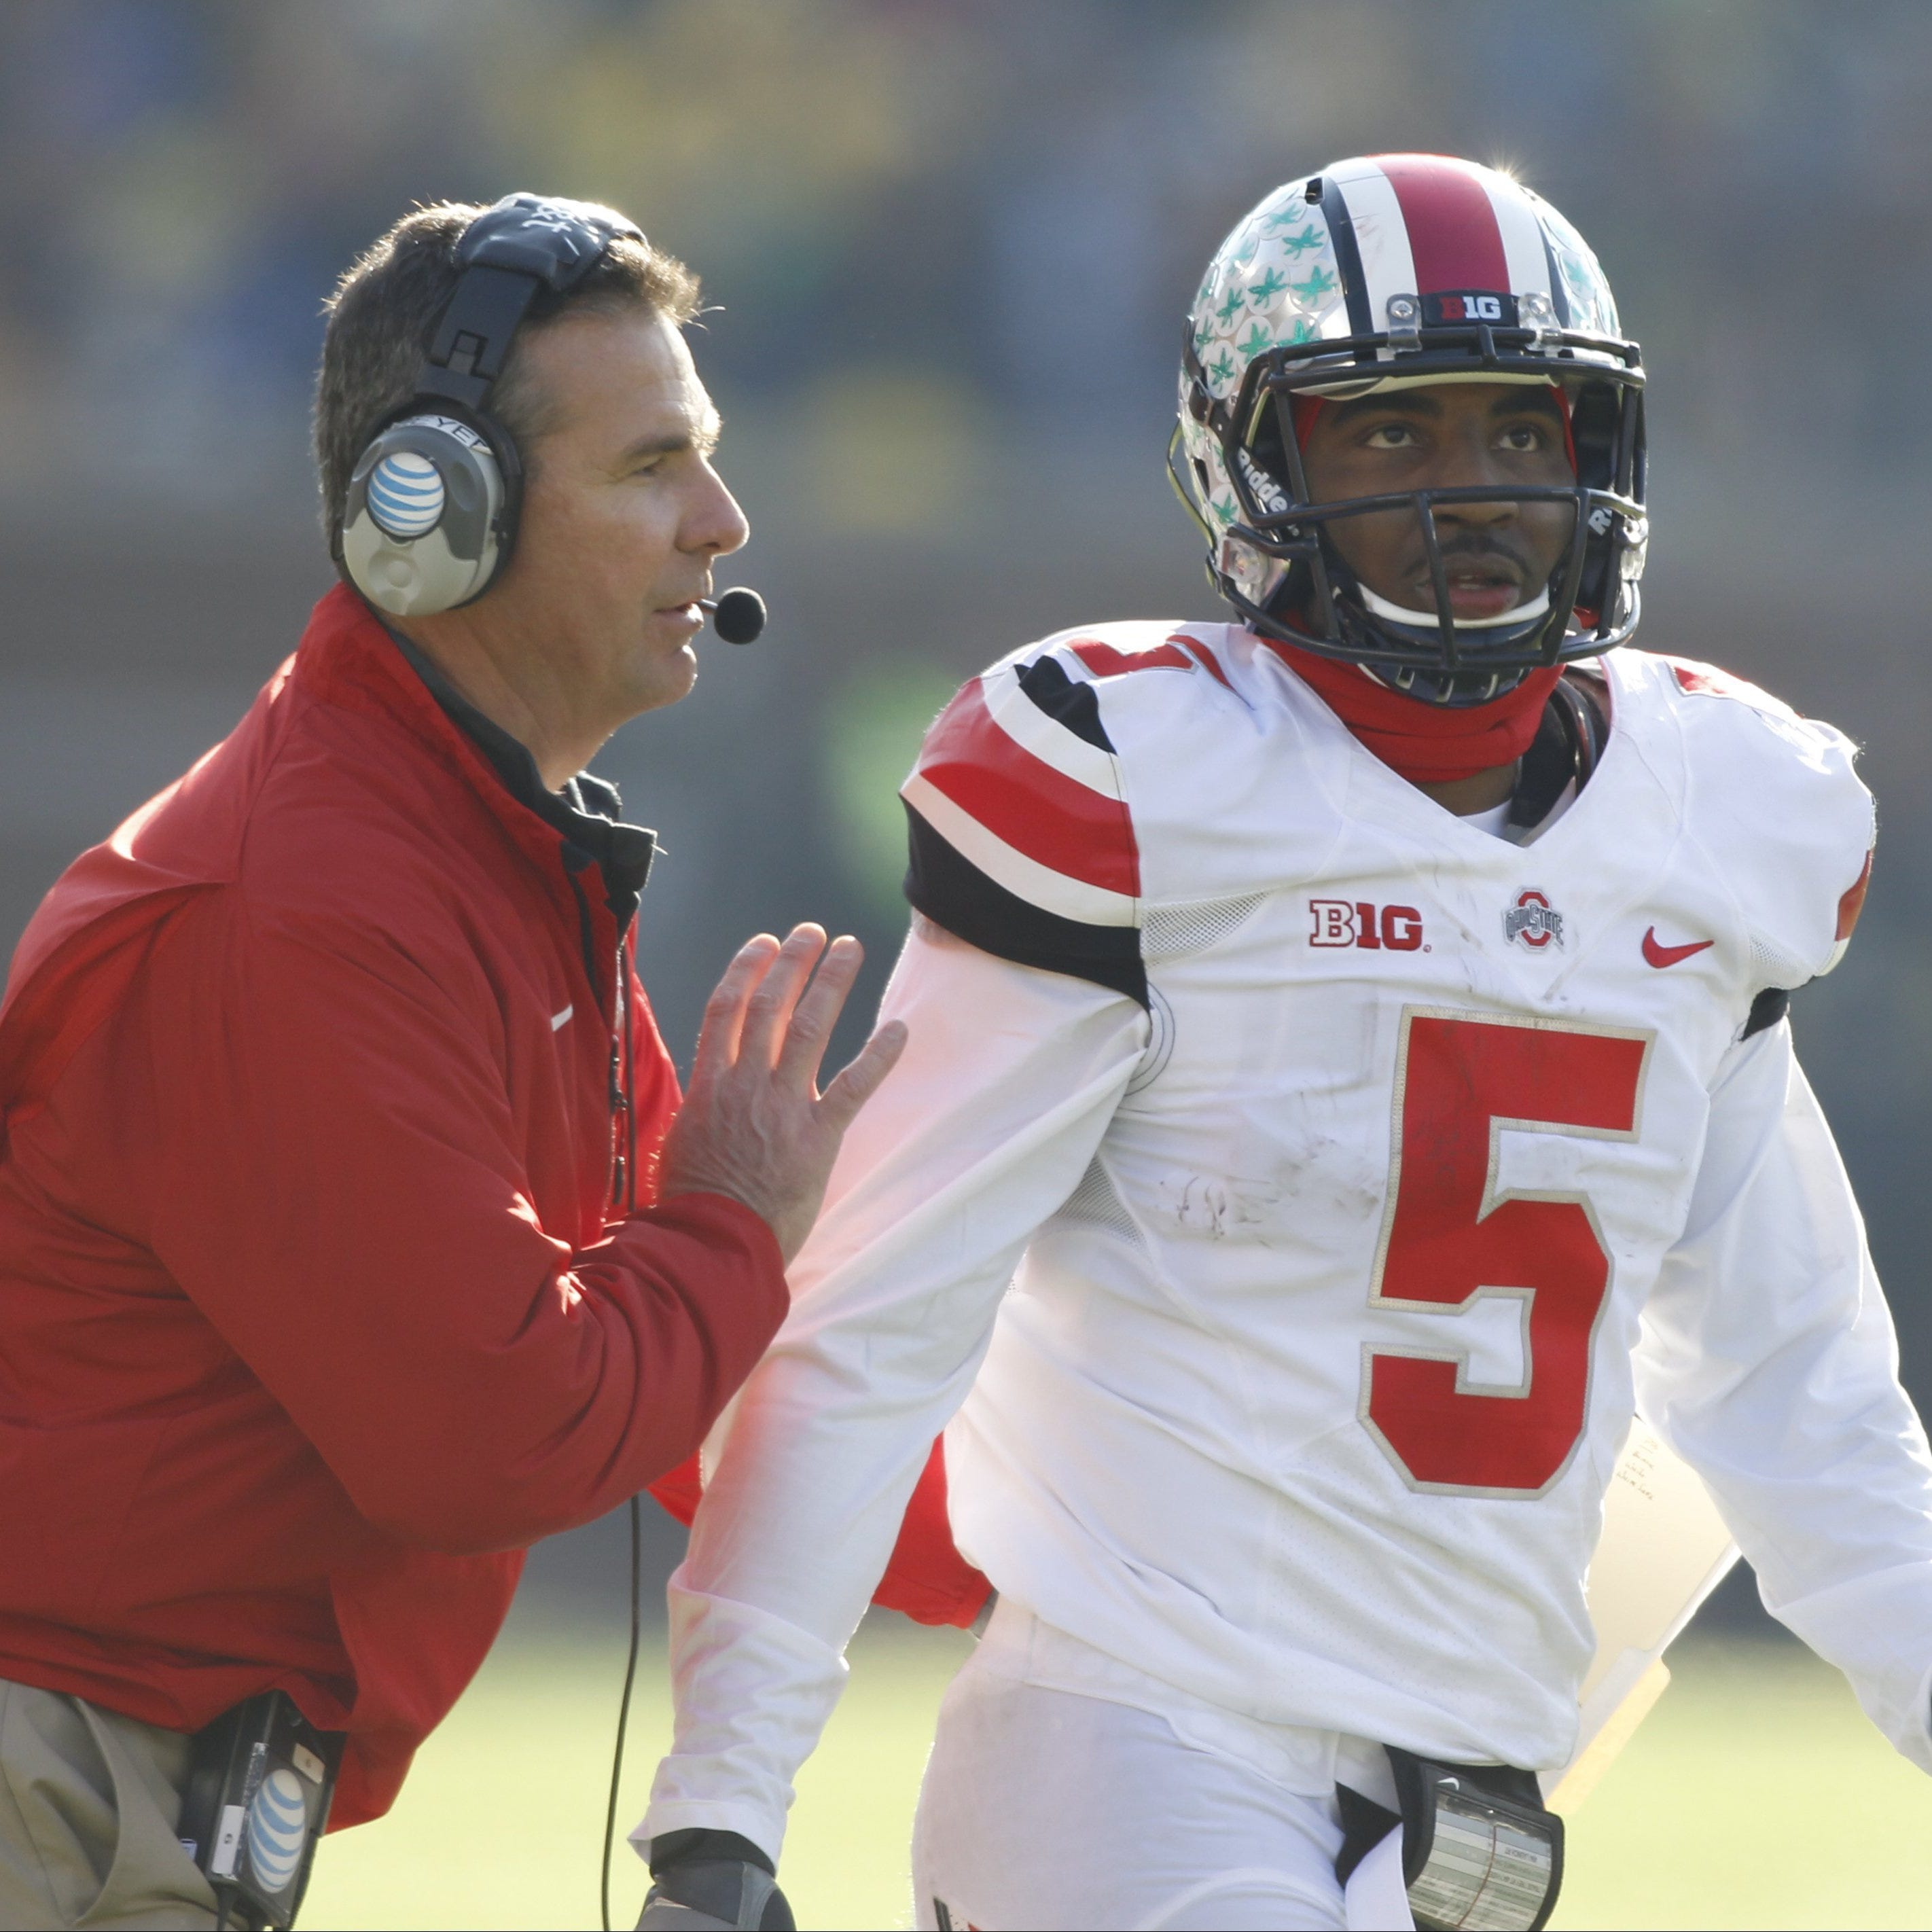 Urban Meyer's reporting obligations more defined than most in BIG Ten